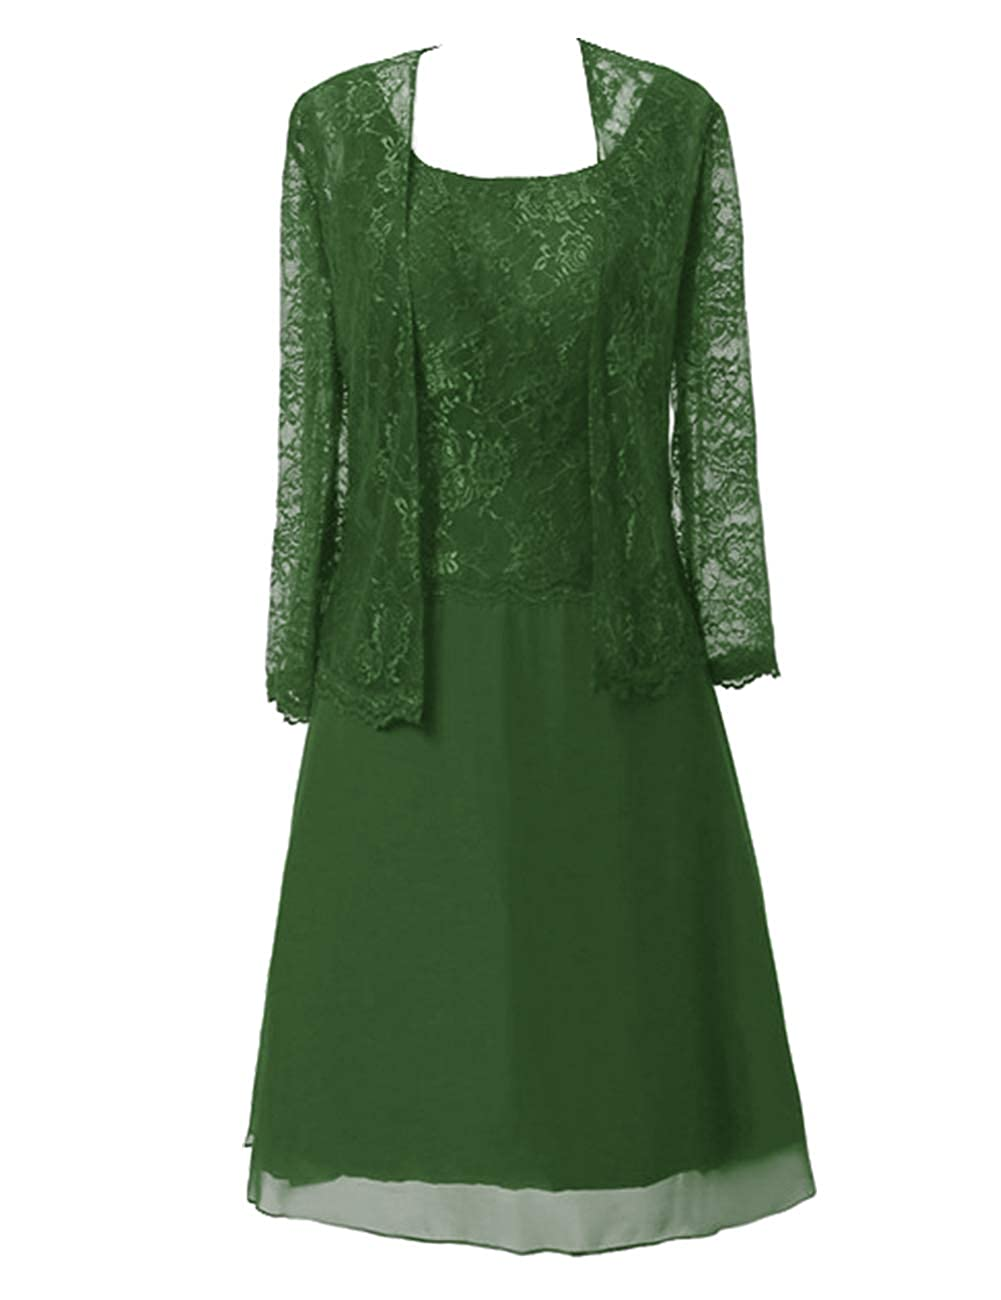 Dark Green Mother of The Bride Dresses Knee Length for Wedding Plus Size Mother Dresses for Women Special Occasion with Jacket